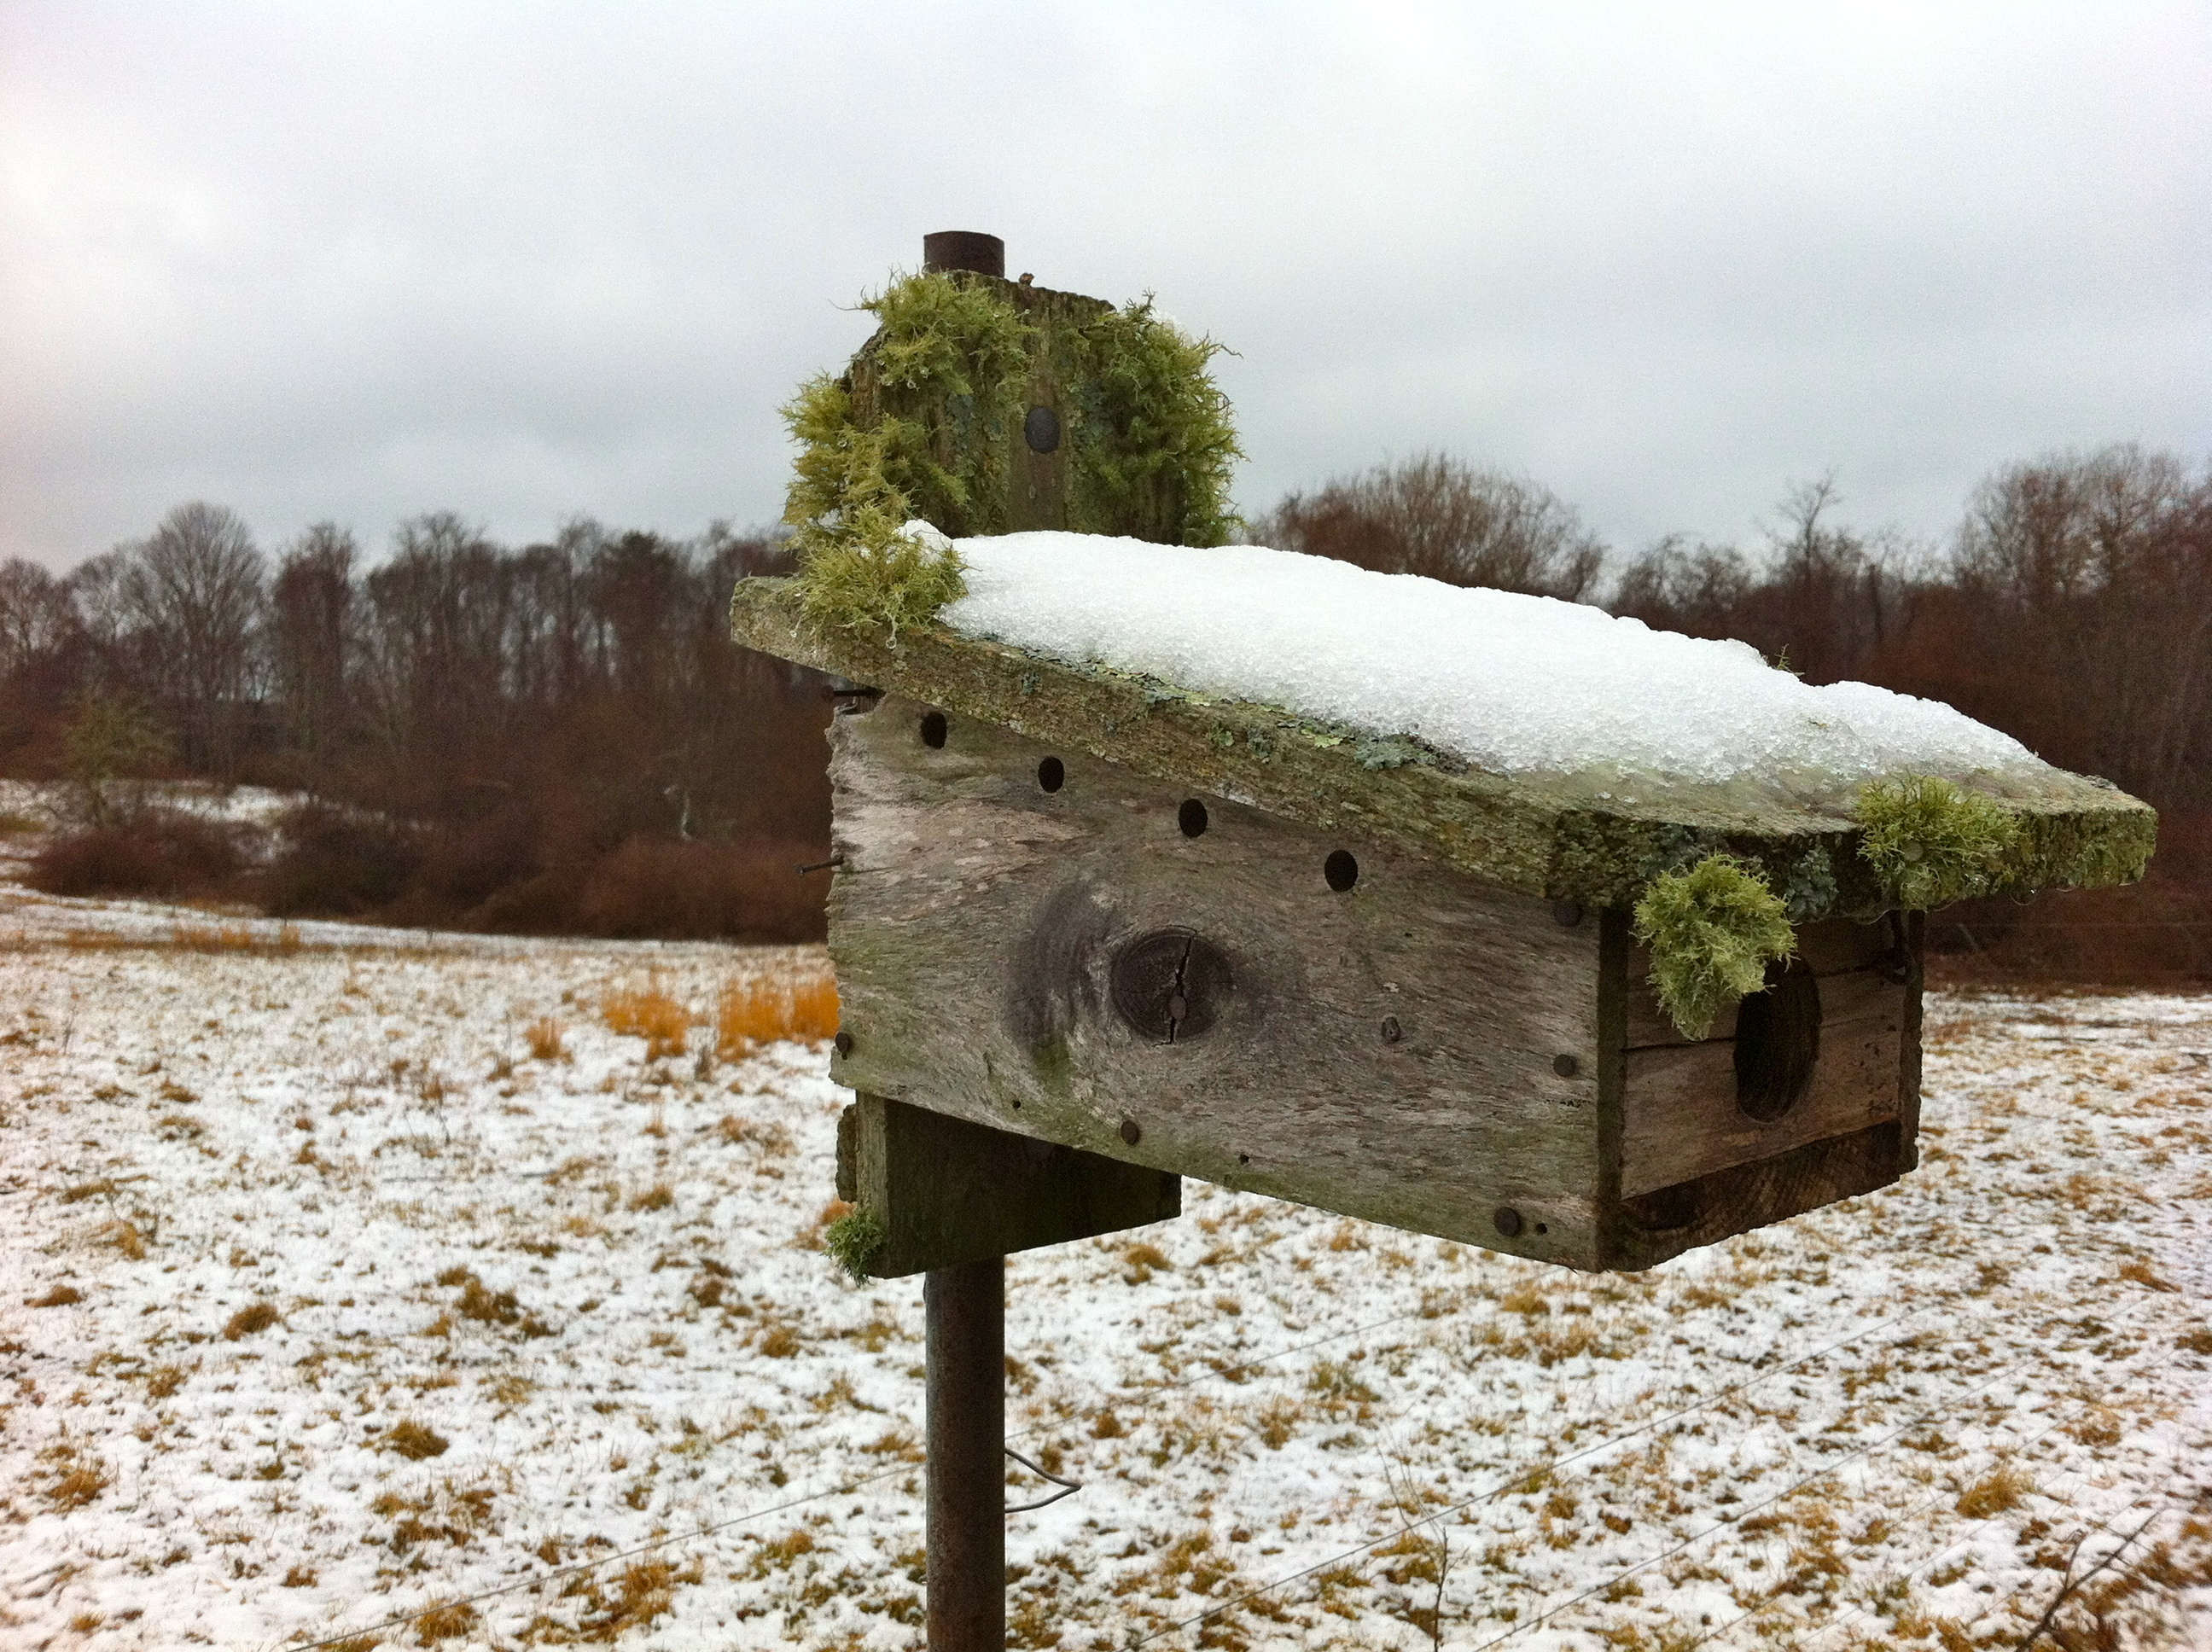 Peterson Farm, birdhouse, winter